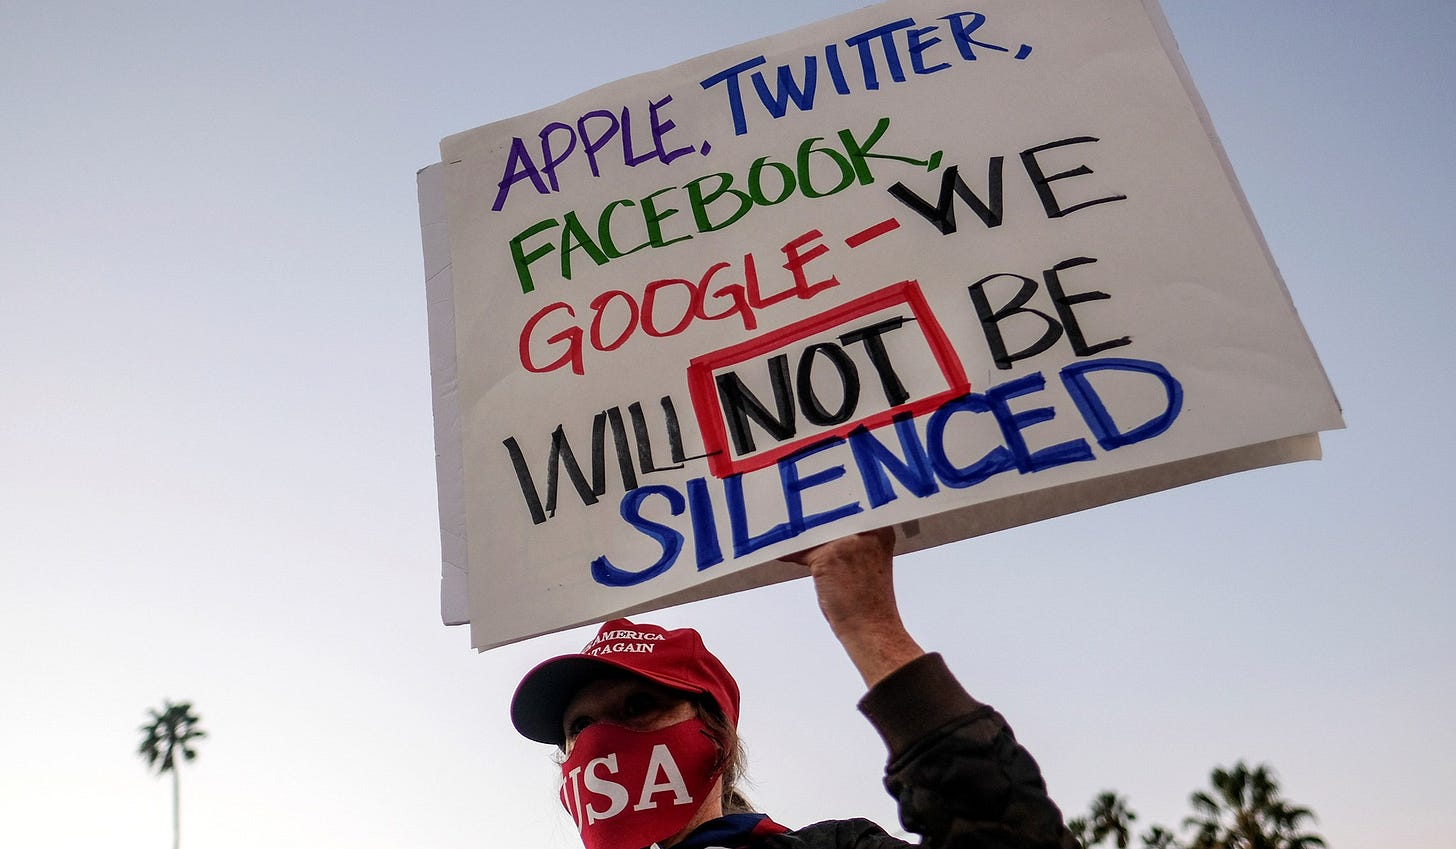 Apple, Twitter, Facebook, Google we will NOT be silenced